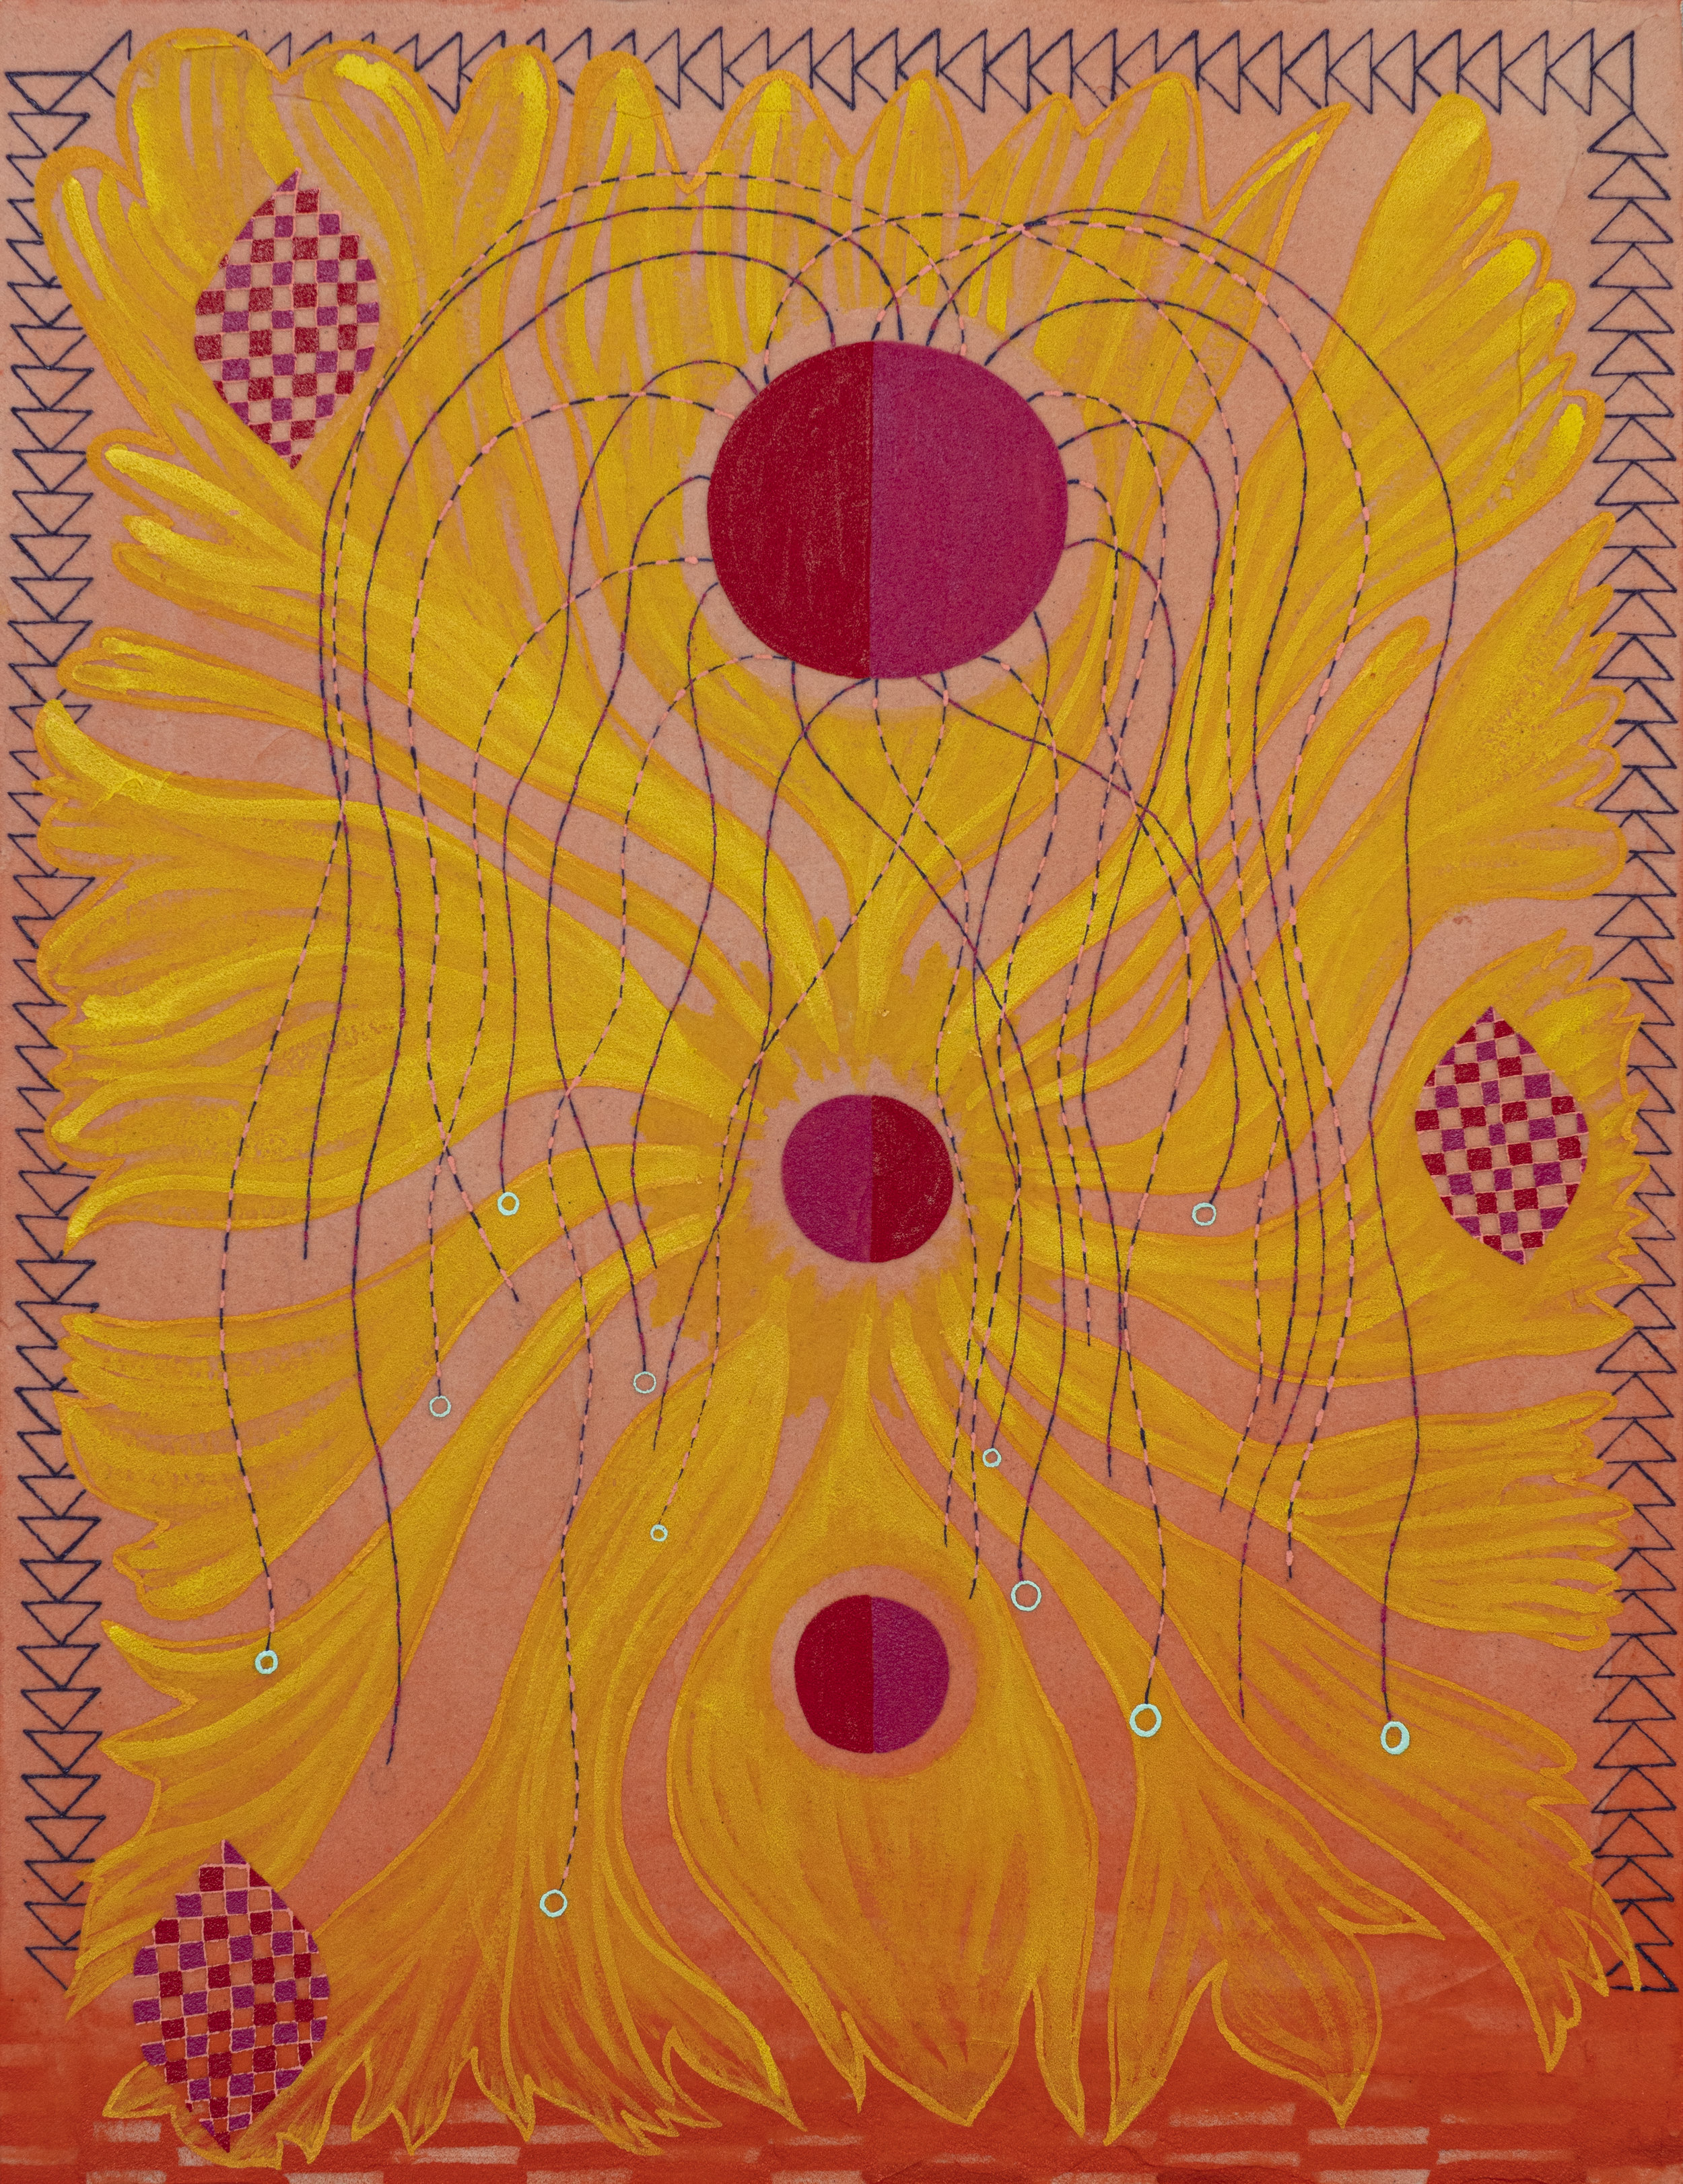 Three red circles going down the middle of the orange canvas; the center circle has yellow petal-like forms that reach out to the edge of the canvas. The artist painted threads coming from the uppermost circle which is bigger than the other two circles below it. Three leaves that are checkered using the background color and two shades of red are spread throughout the canvas.